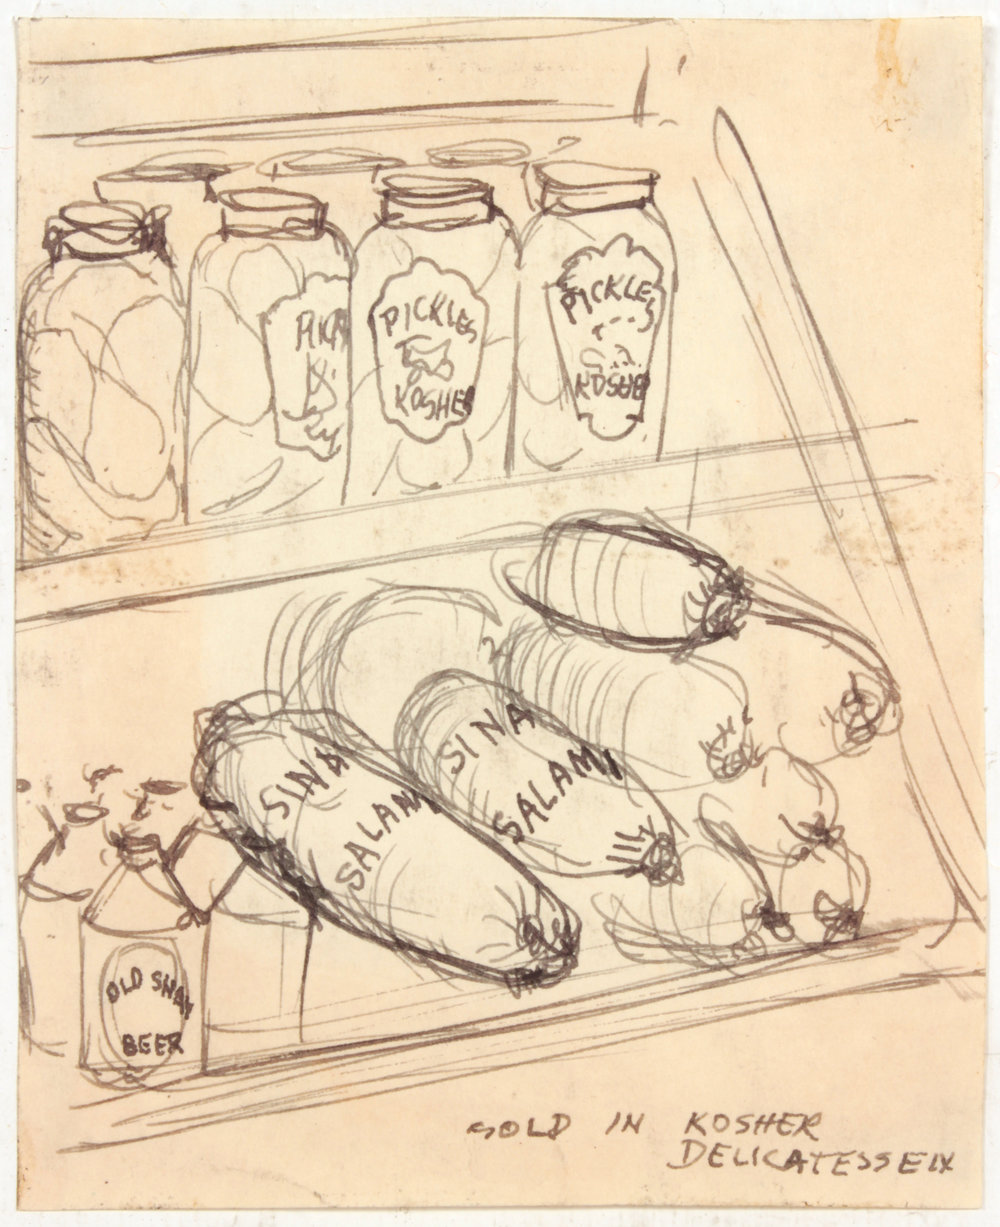 9. 1947-48, Sold In Kosher Delicatessen, Pen and Ink on Paper, 4.1875x3.375, PPS 1442.JPG